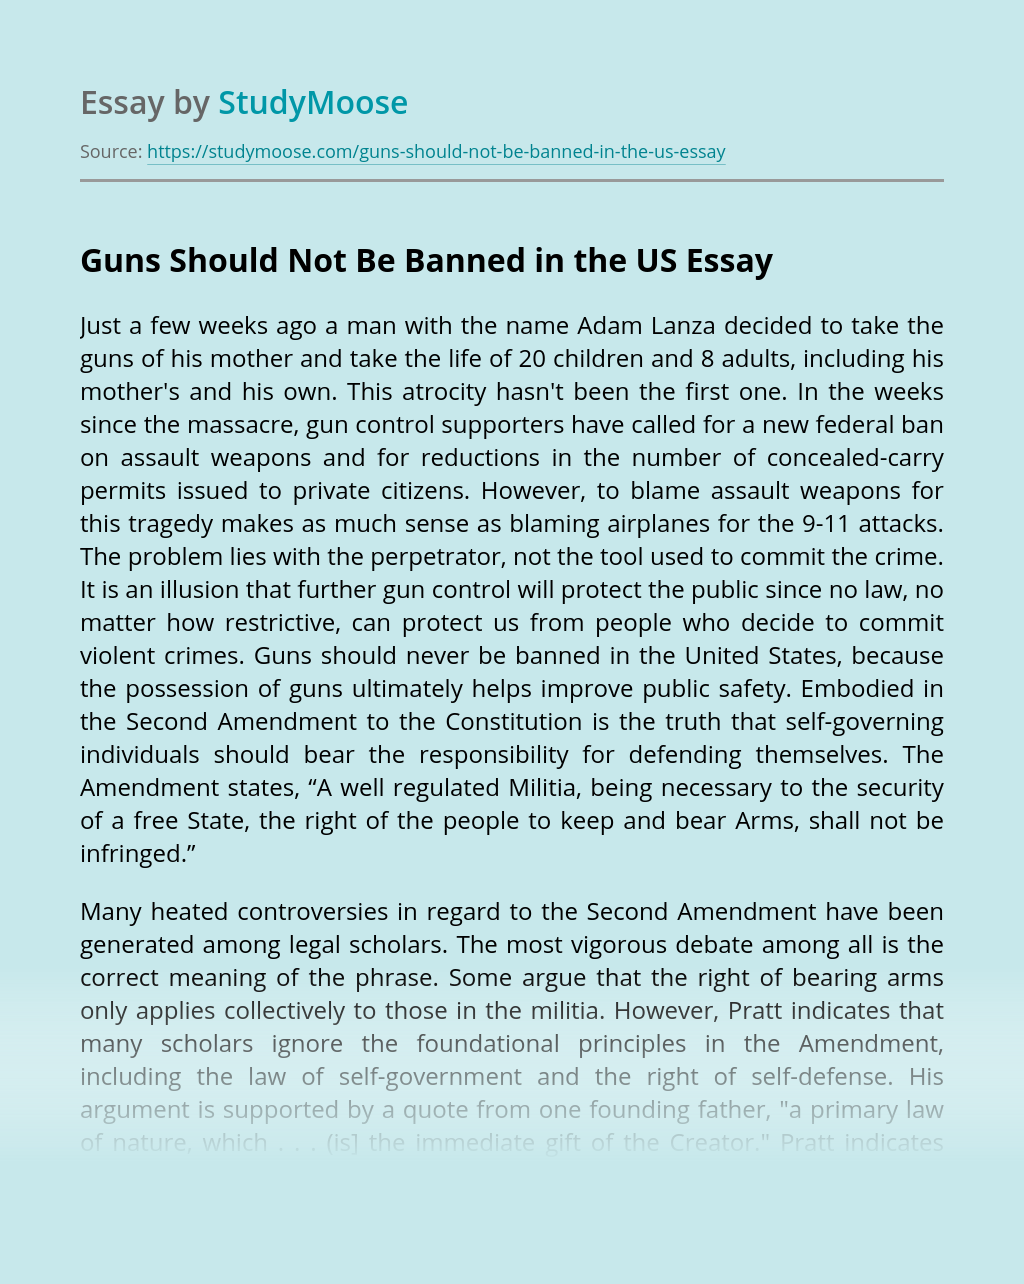 Guns Should Not Be Banned in the US